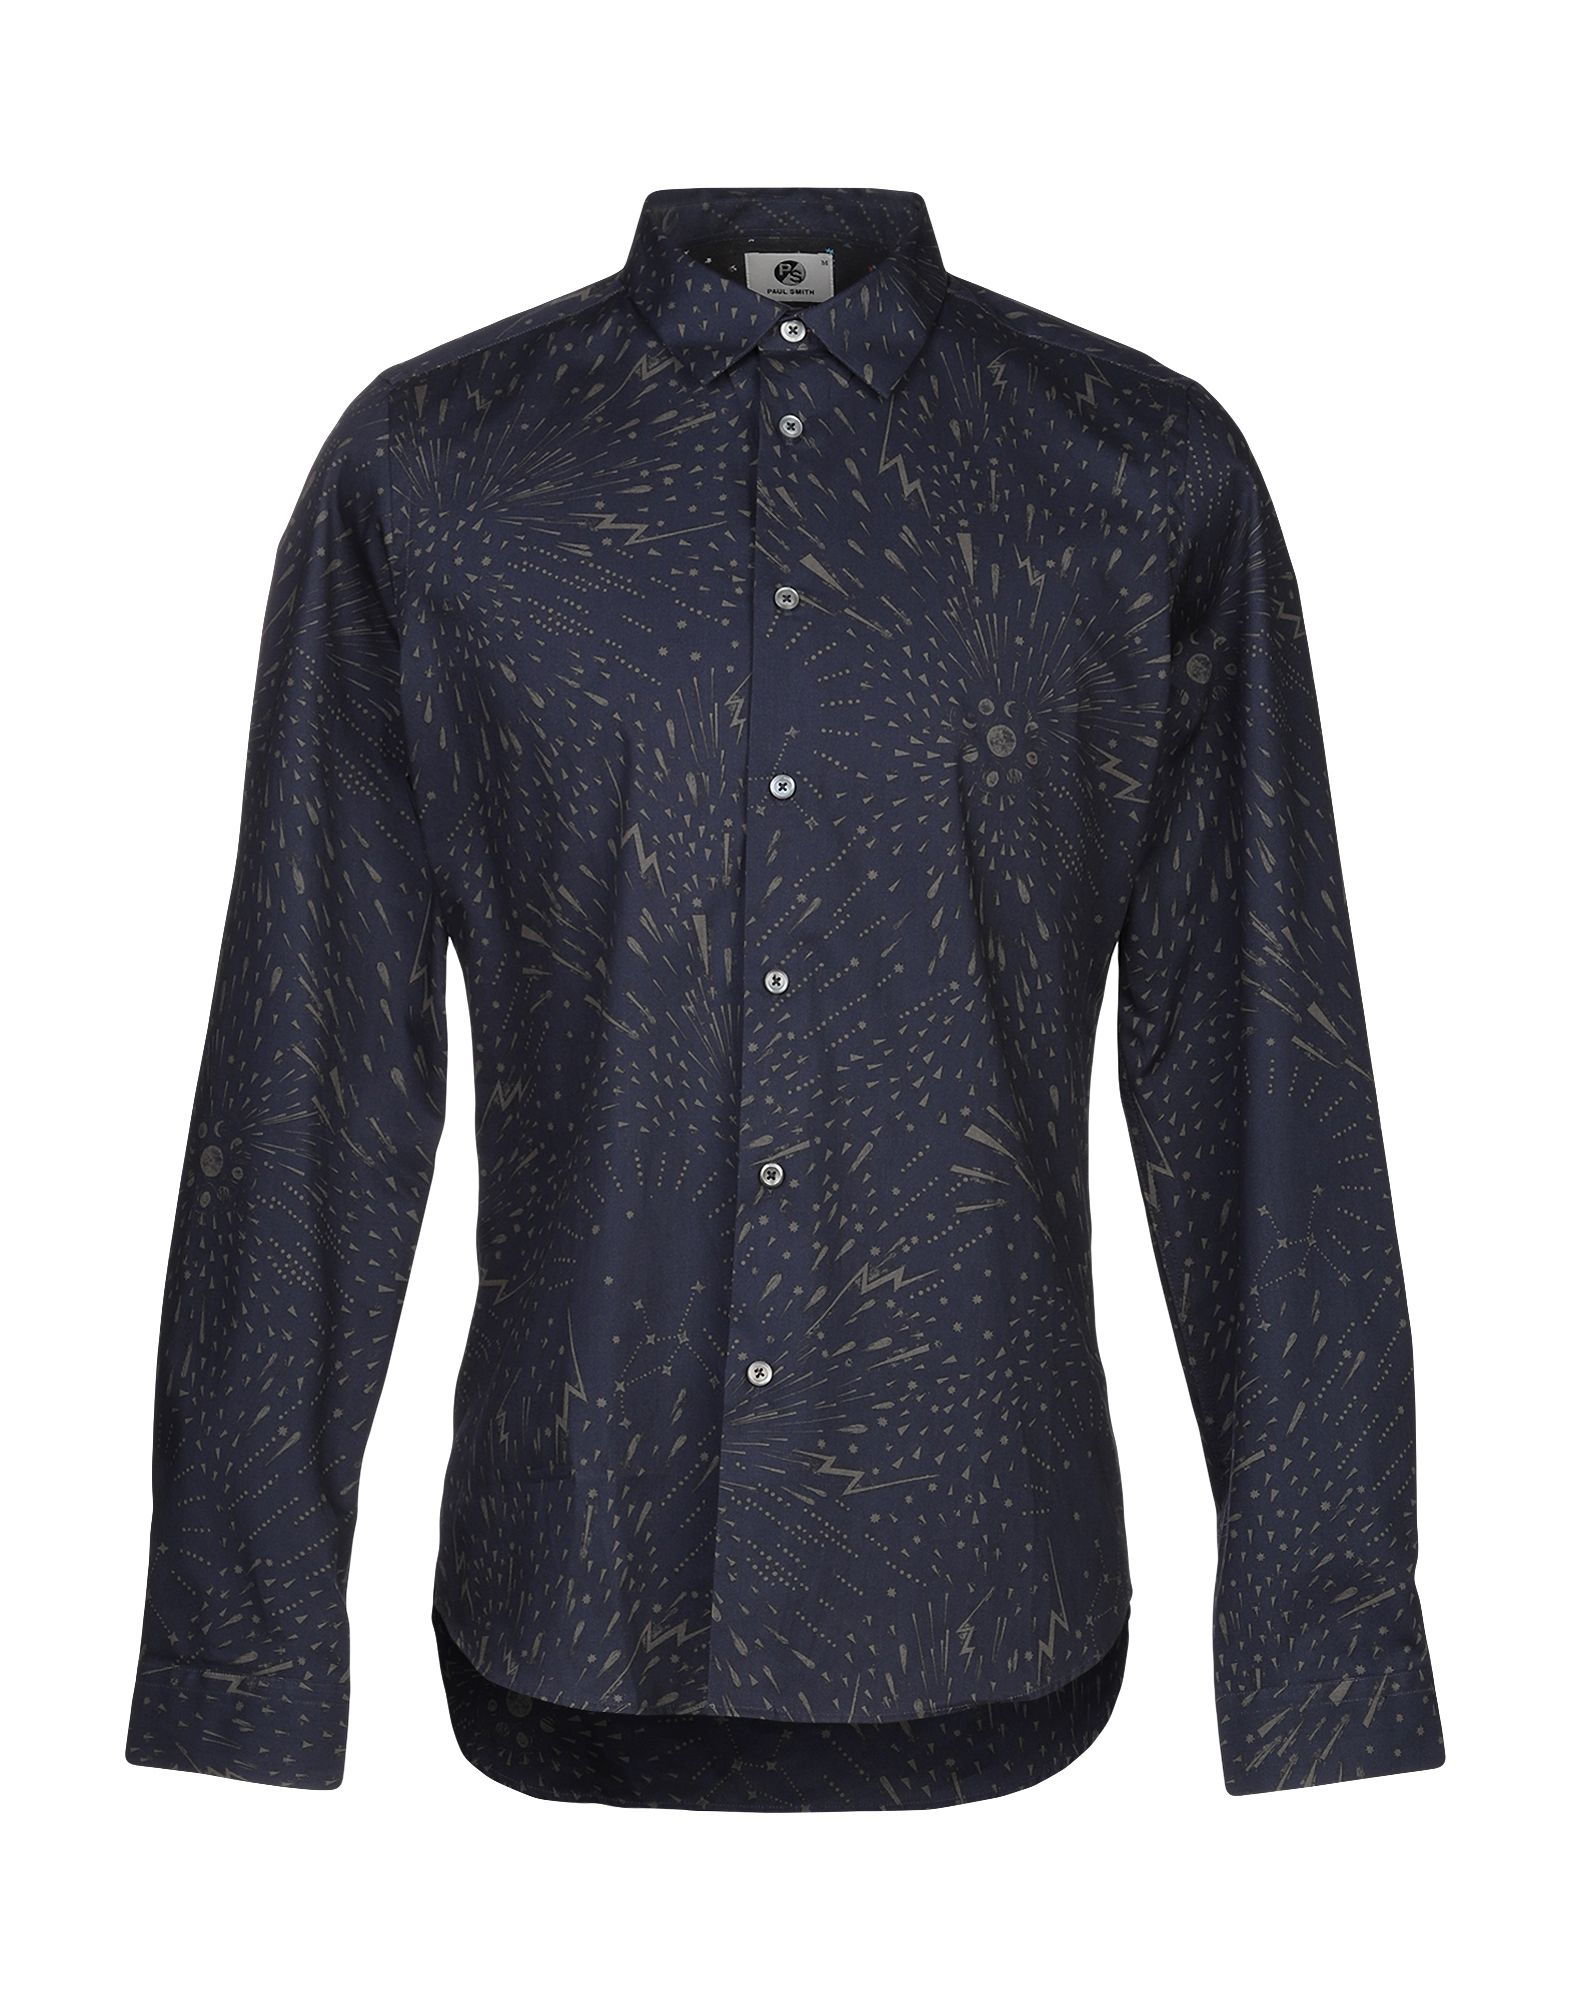 Camicia Fantasia Fantasia Ps Paul Smith uomo - 38855518BF